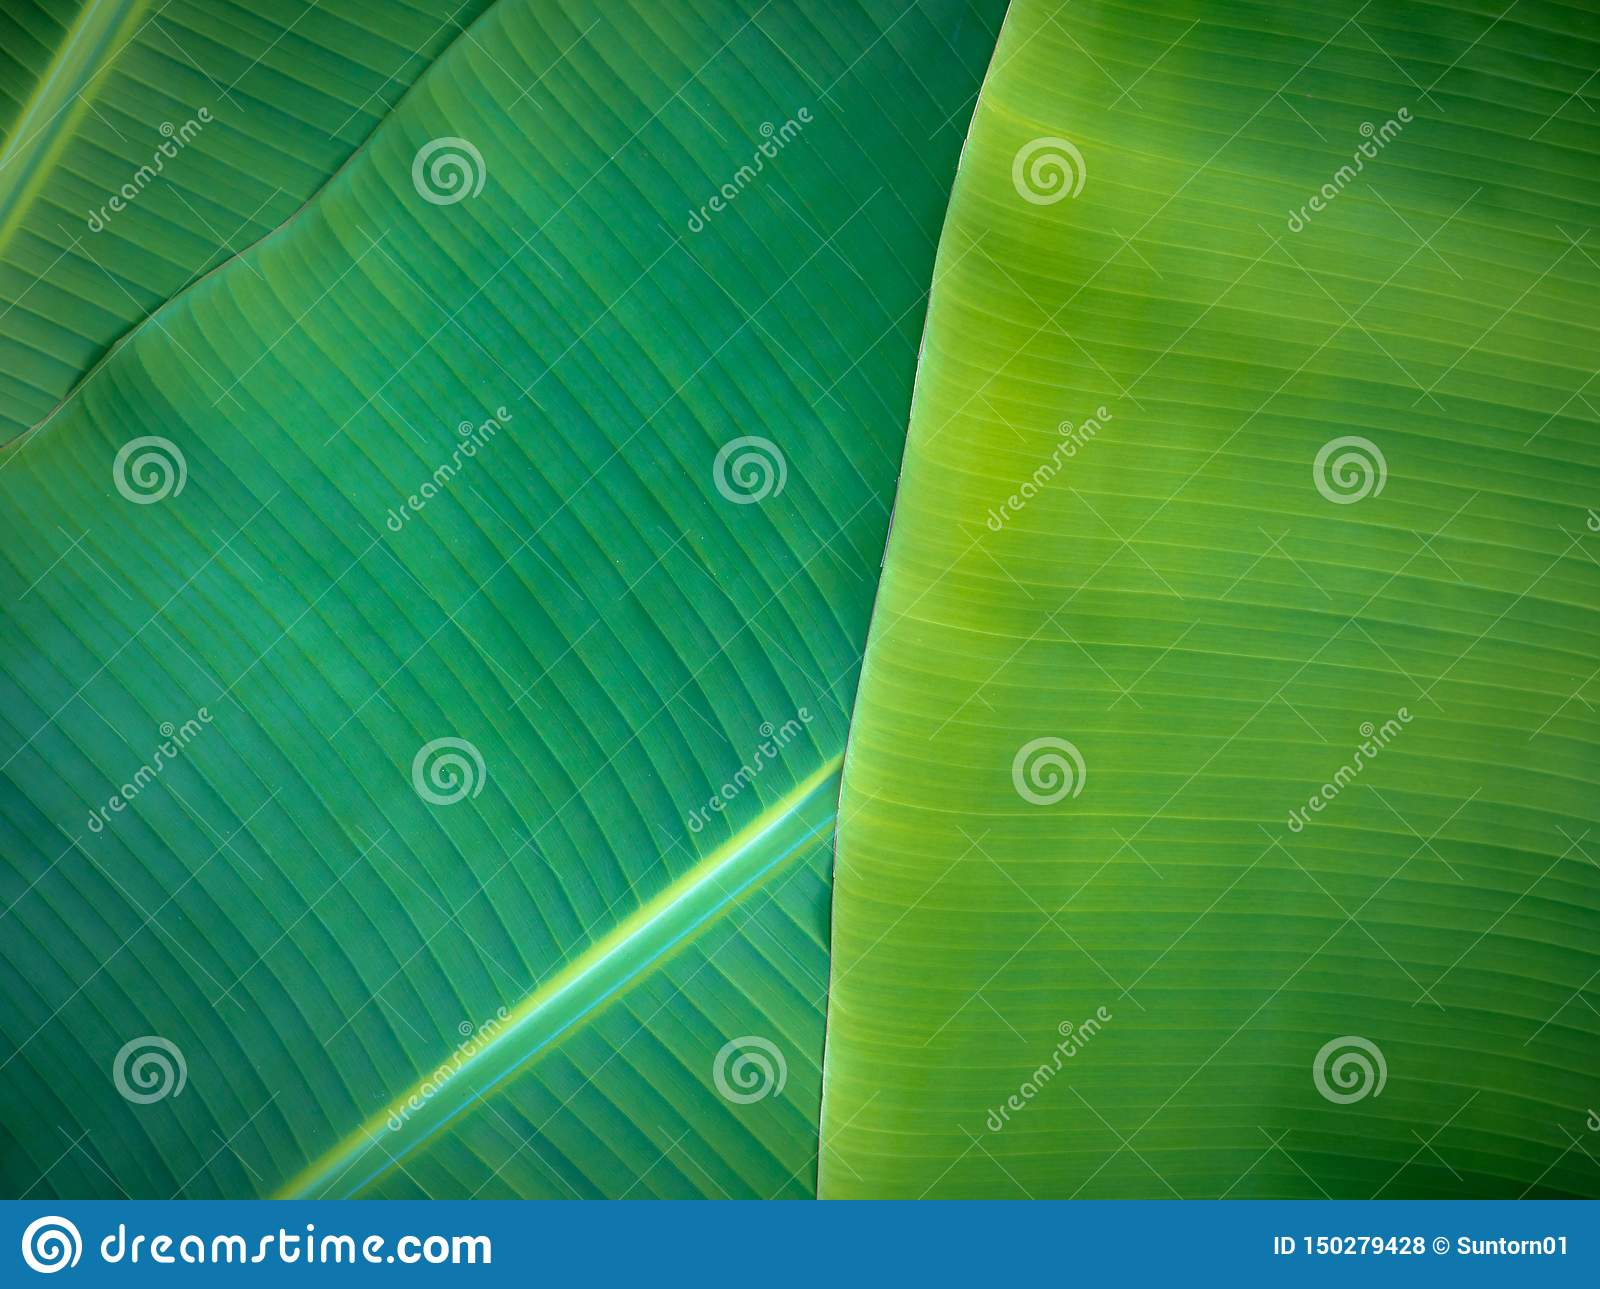 Tropical Banana Leaves Natural Green Background Natural Banana Leaves Can Be Used In Many Ways In Everyday Life Stock Photo Image Of Banana Healthy 150279428 Take a close look at the stylish with amazing designs. dreamstime com